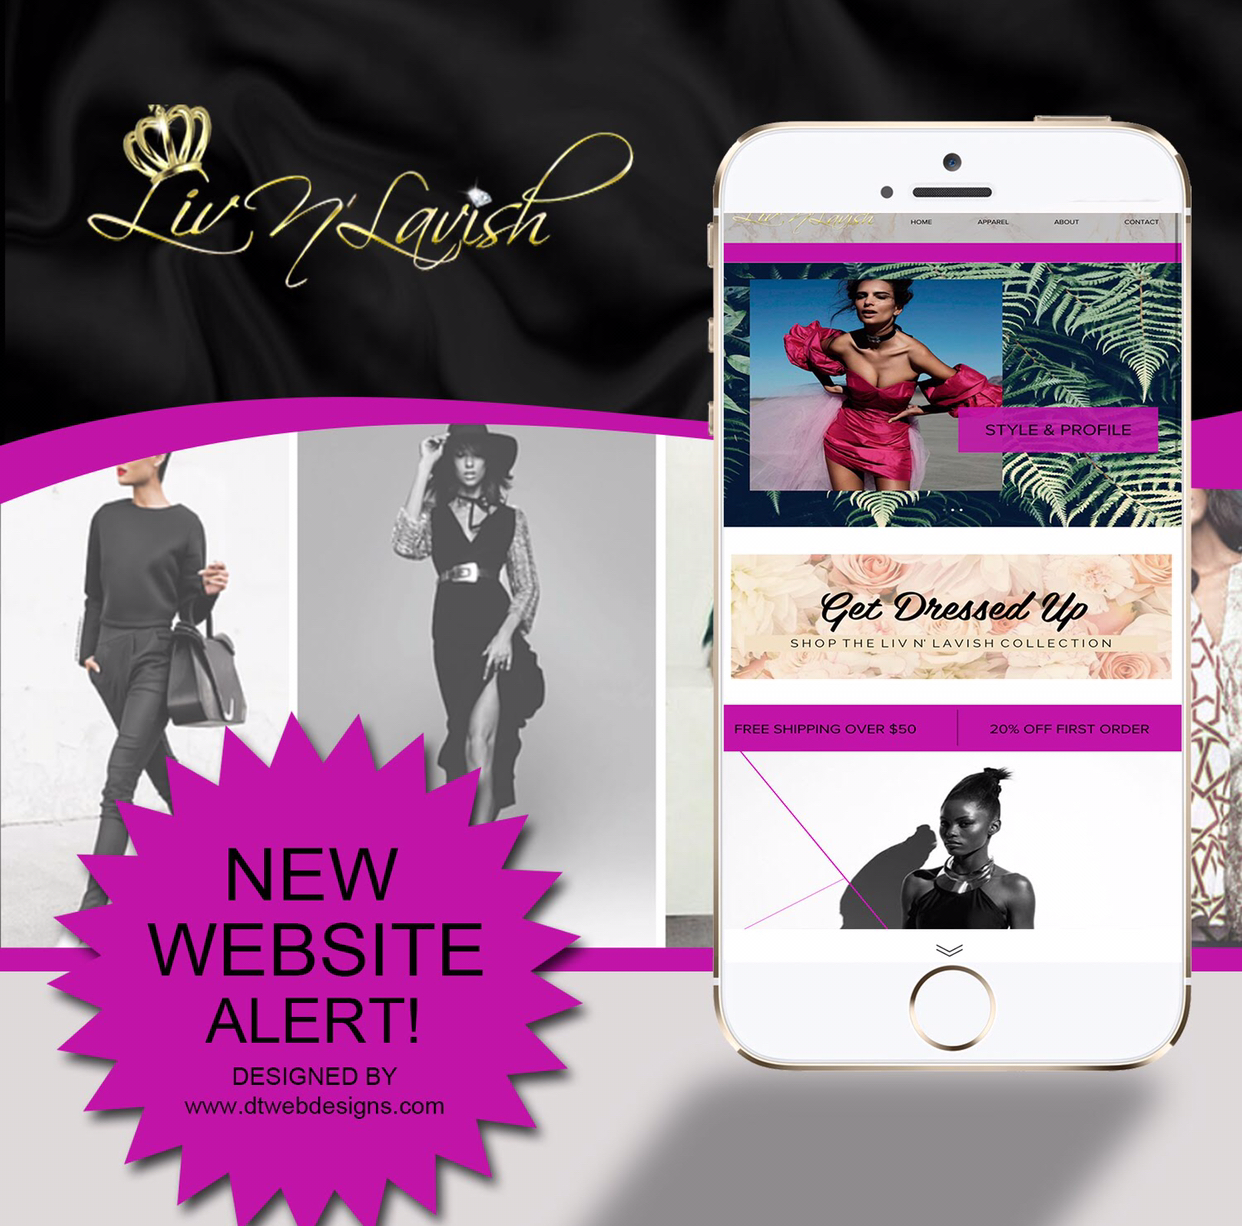 FASHION BOUTIQUE SITES